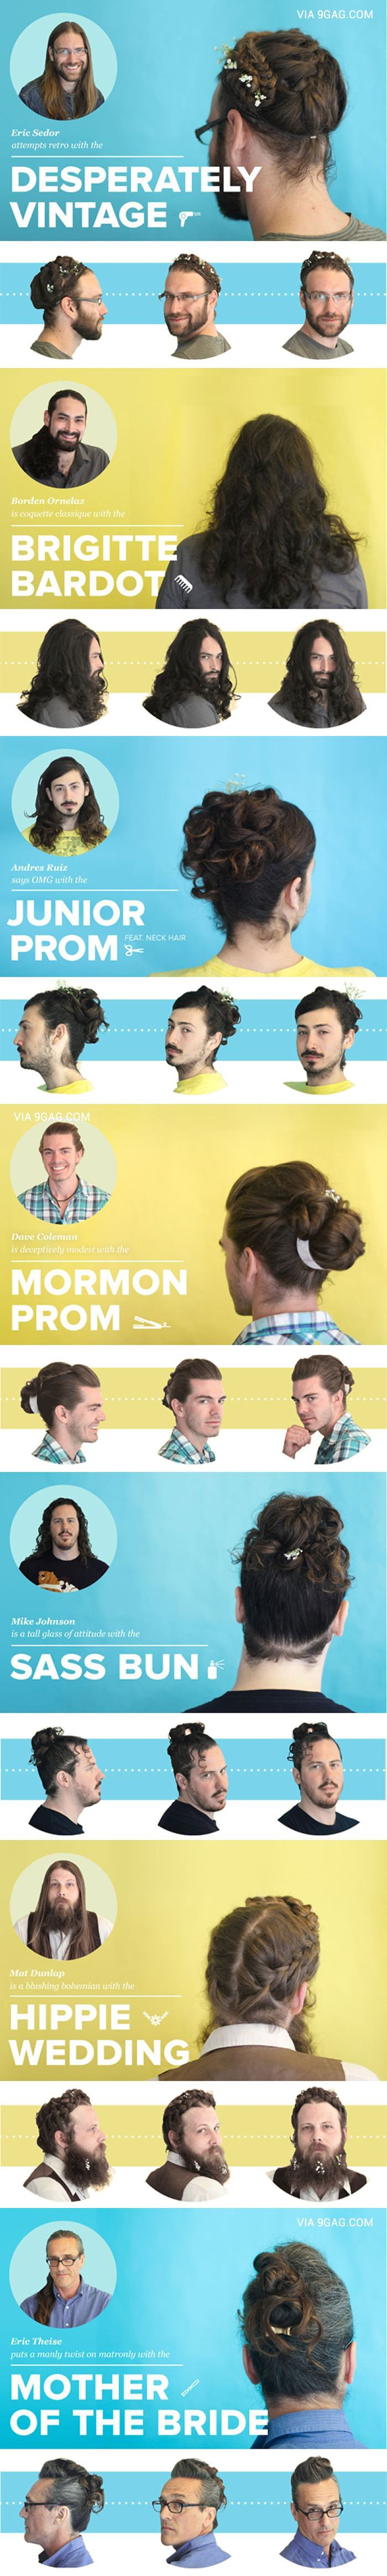 Guys With Fancy Lady Hair - This is pure gold. I'm dying over hereeee.